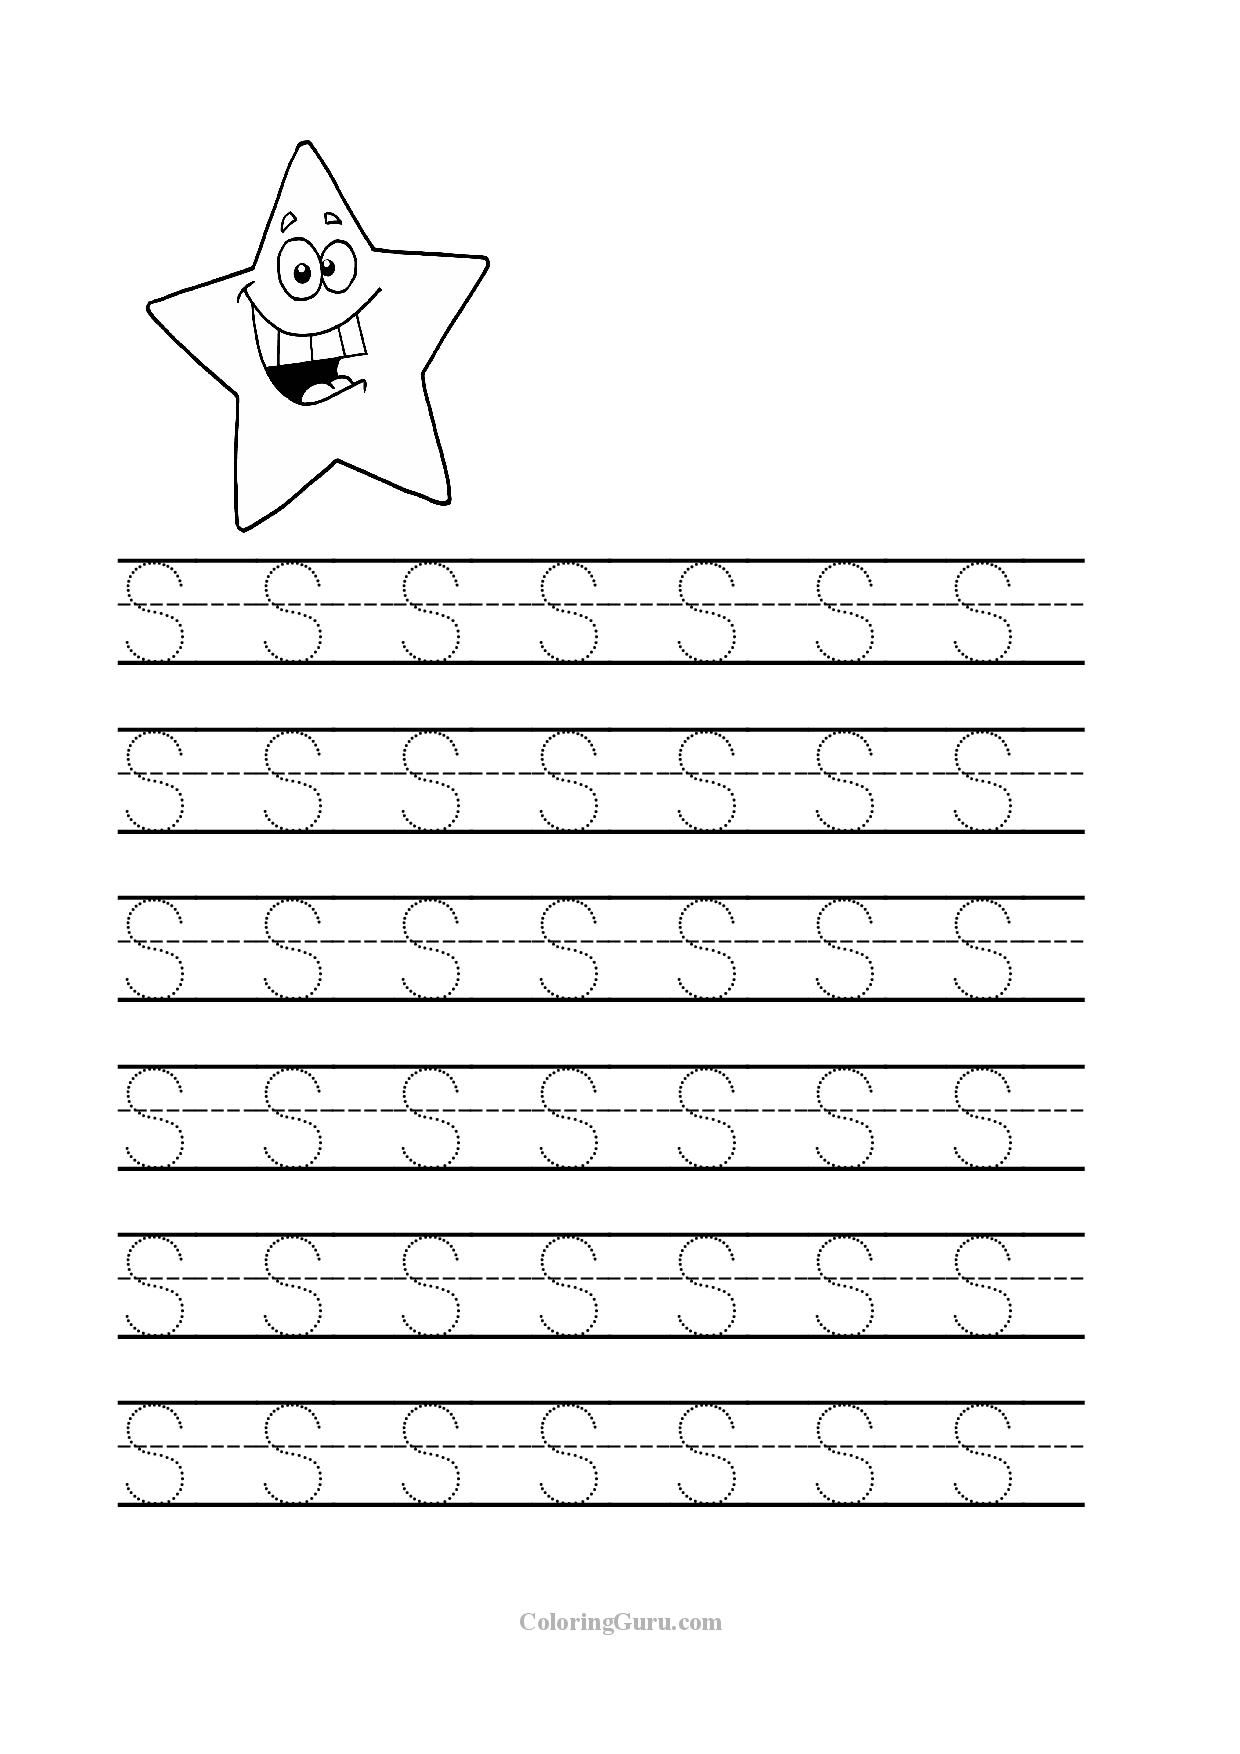 Free Printable Tracing Letter S Worksheets For Preschool within Tracing Letters For Kindergarten Free